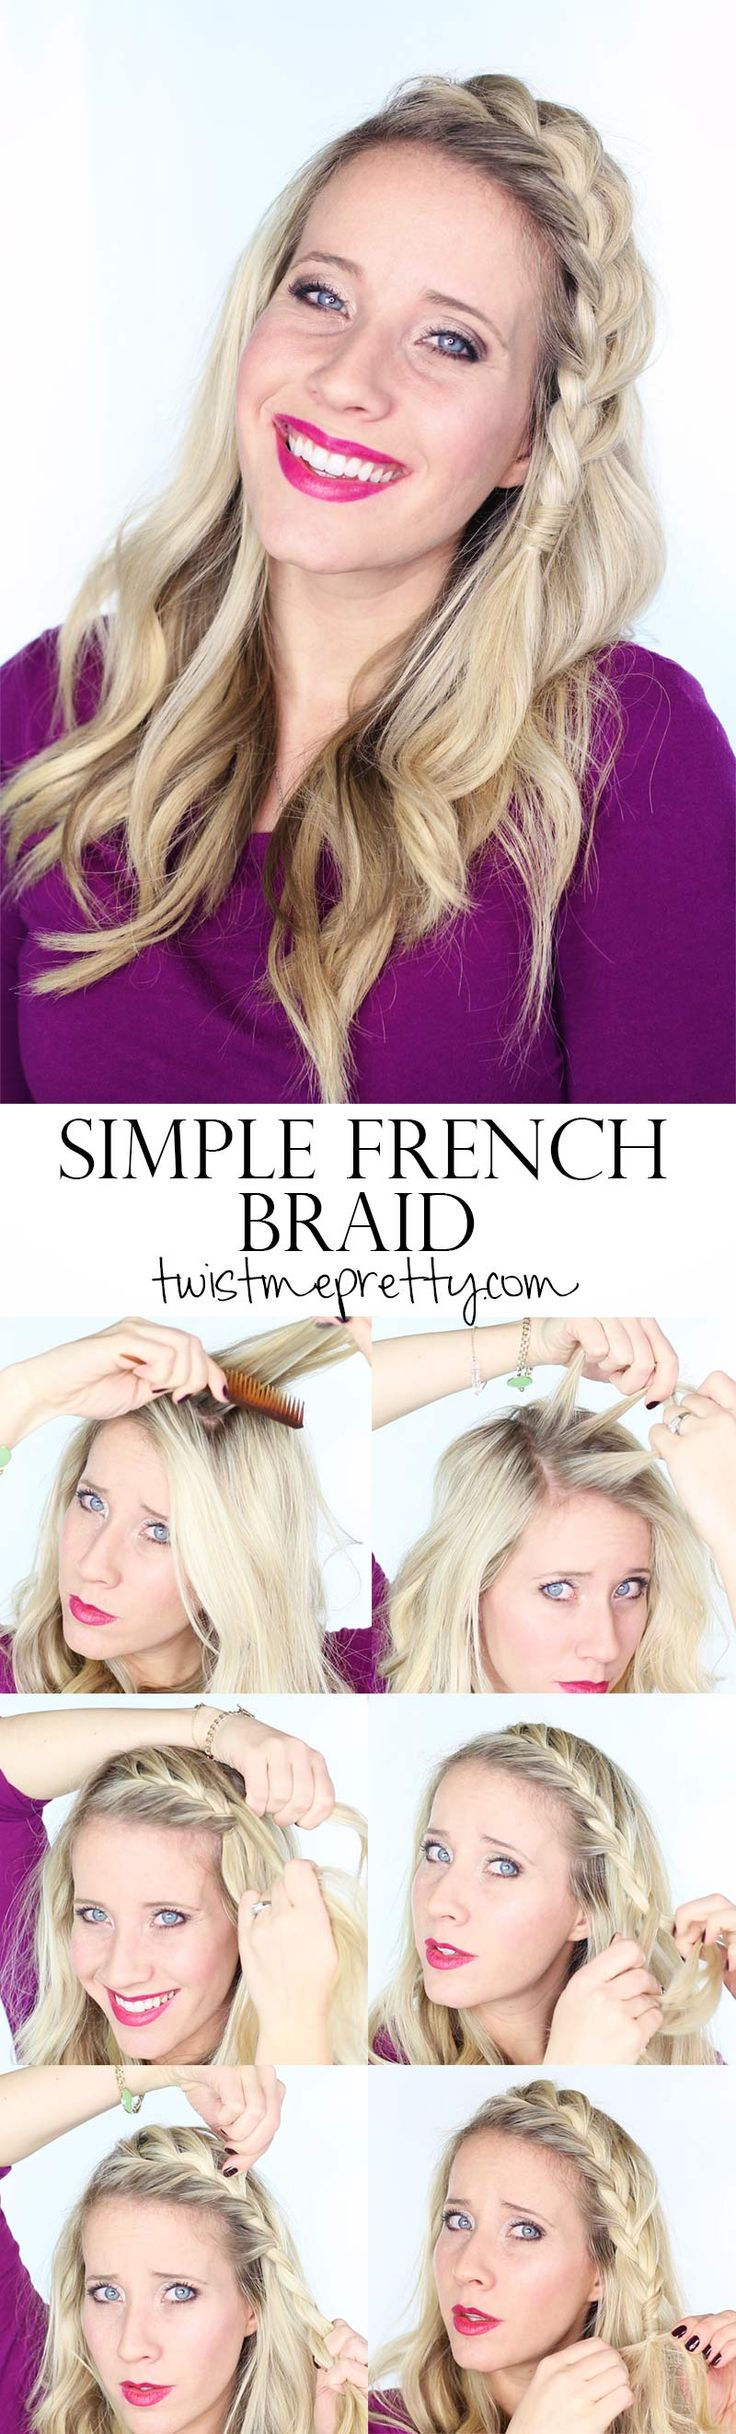 A Simple French Braid -  easy and fast enough for rushed mornings but can be dressed up for date night or something a little more special | Tutorial at Twist Me Pretty